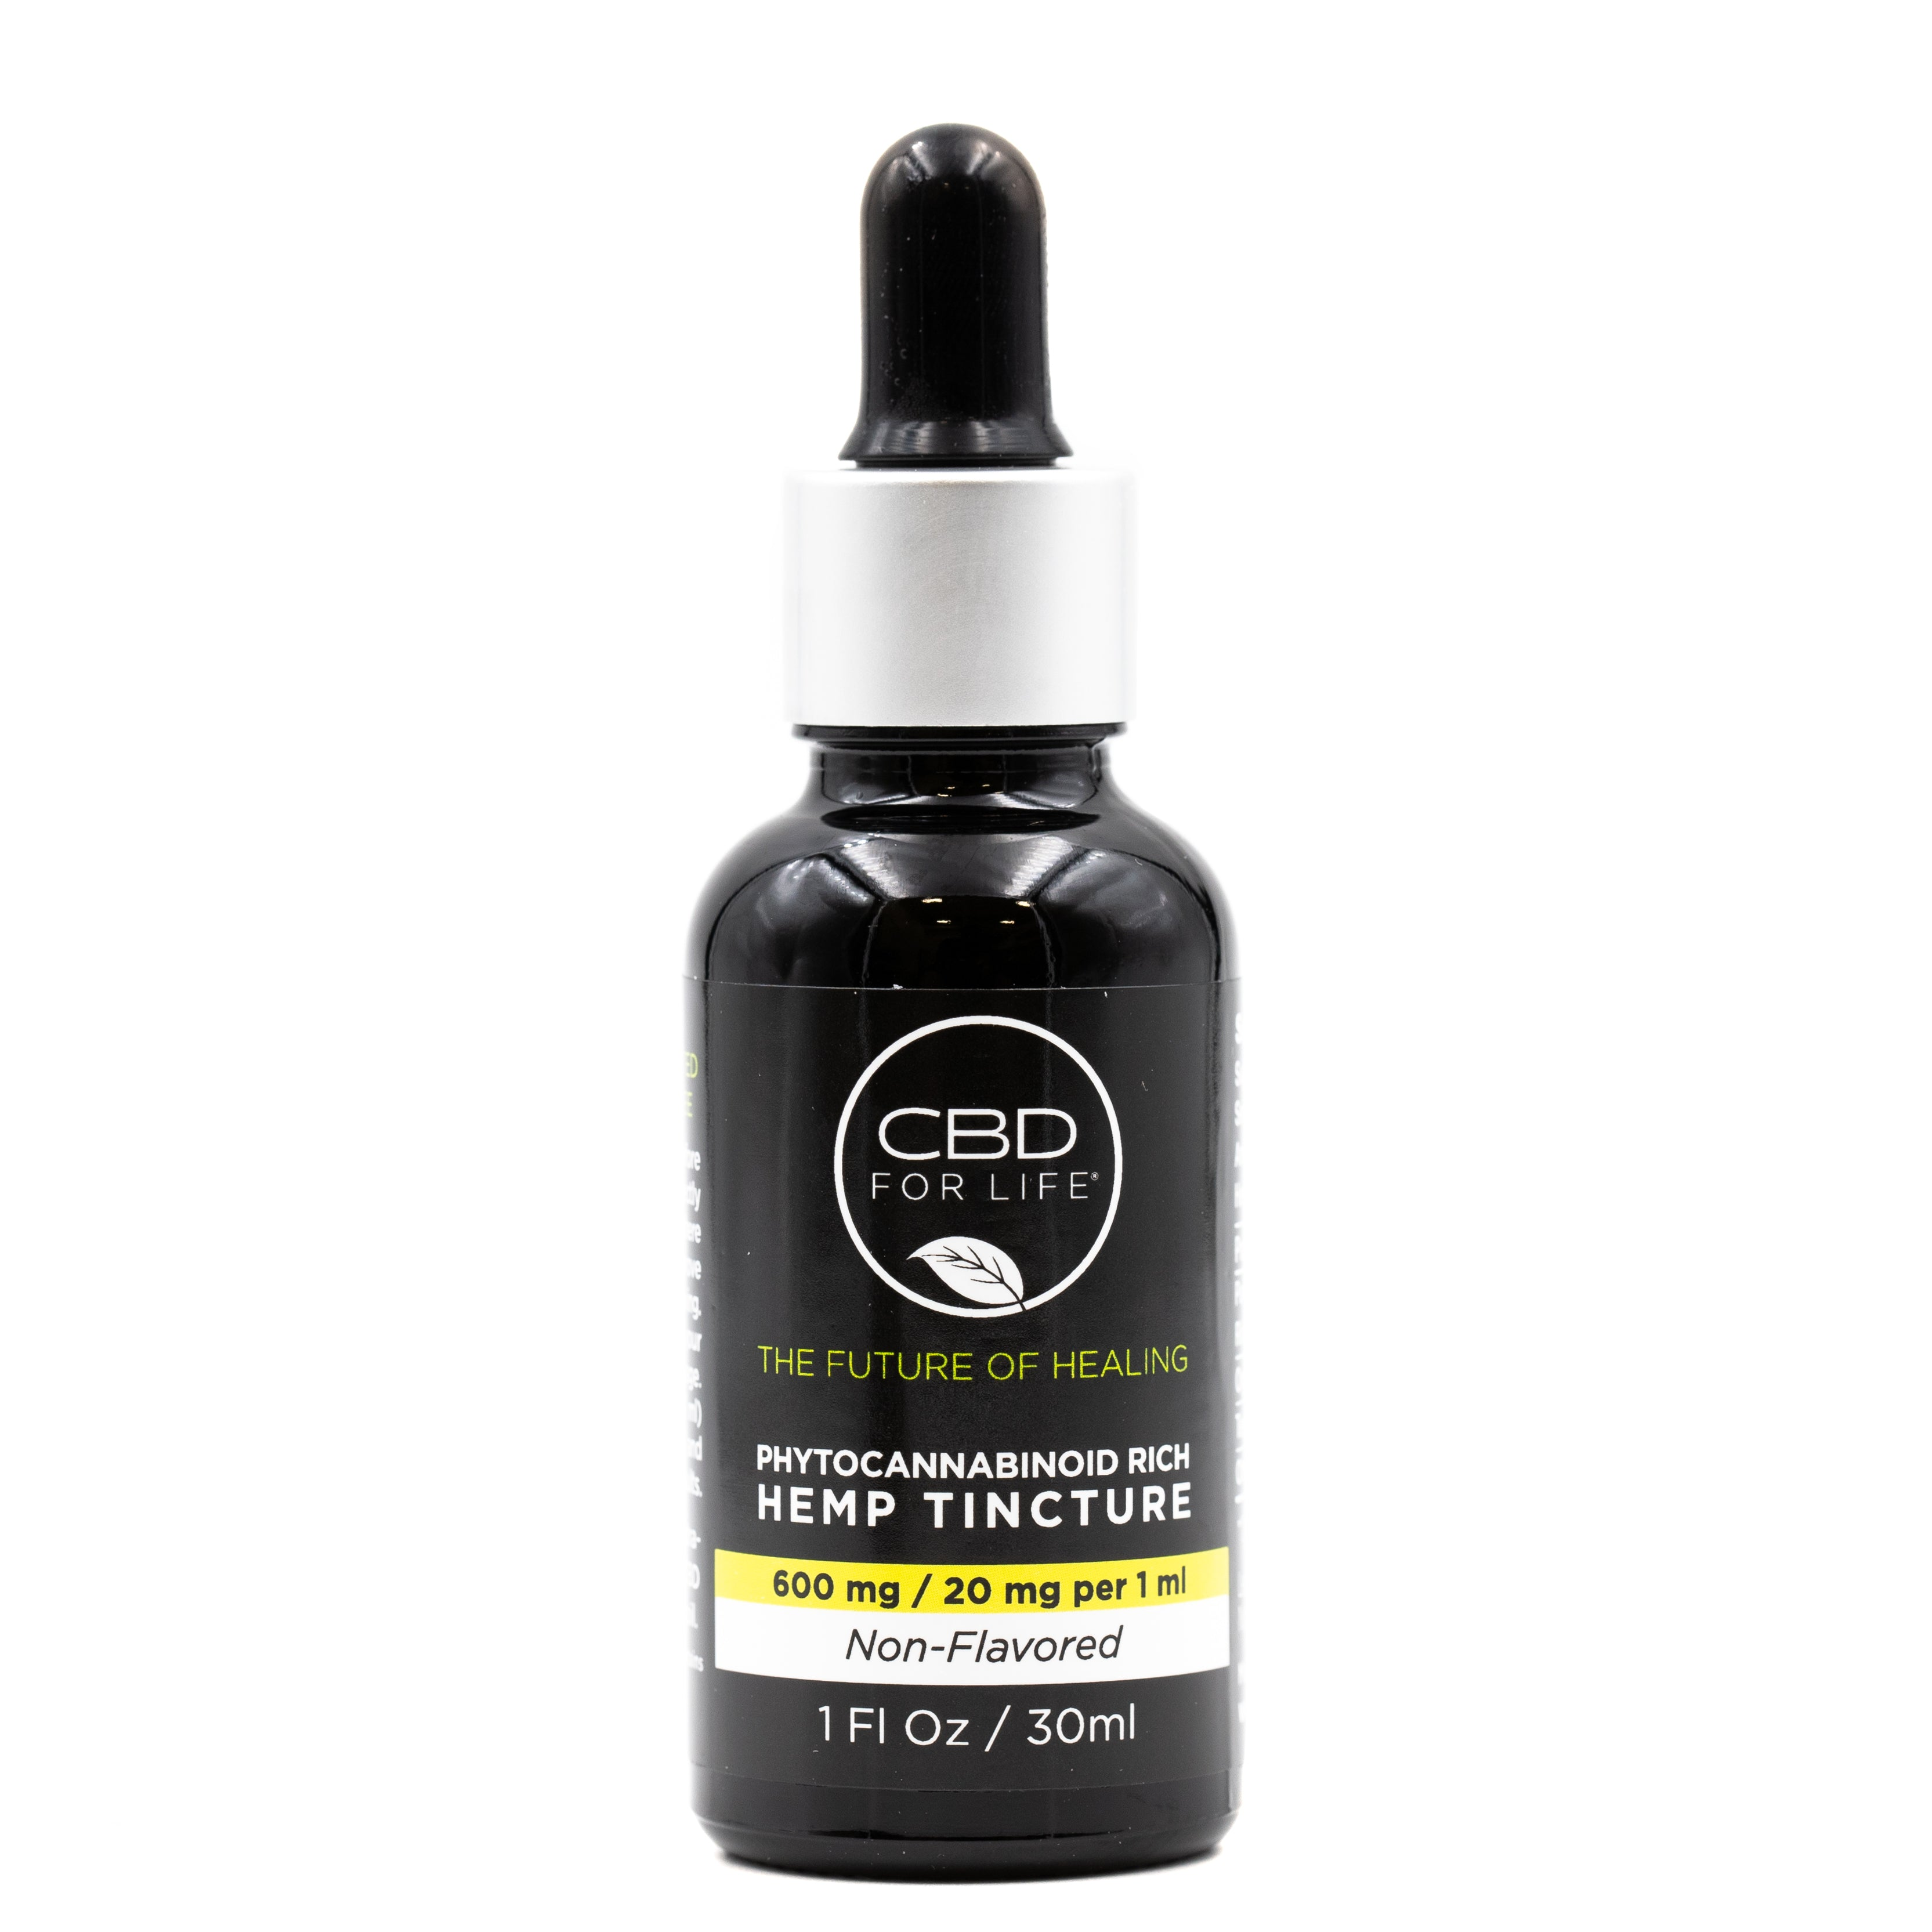 Phytocannabinoid Rich Hemp Tinctures-Non flavored 600mg